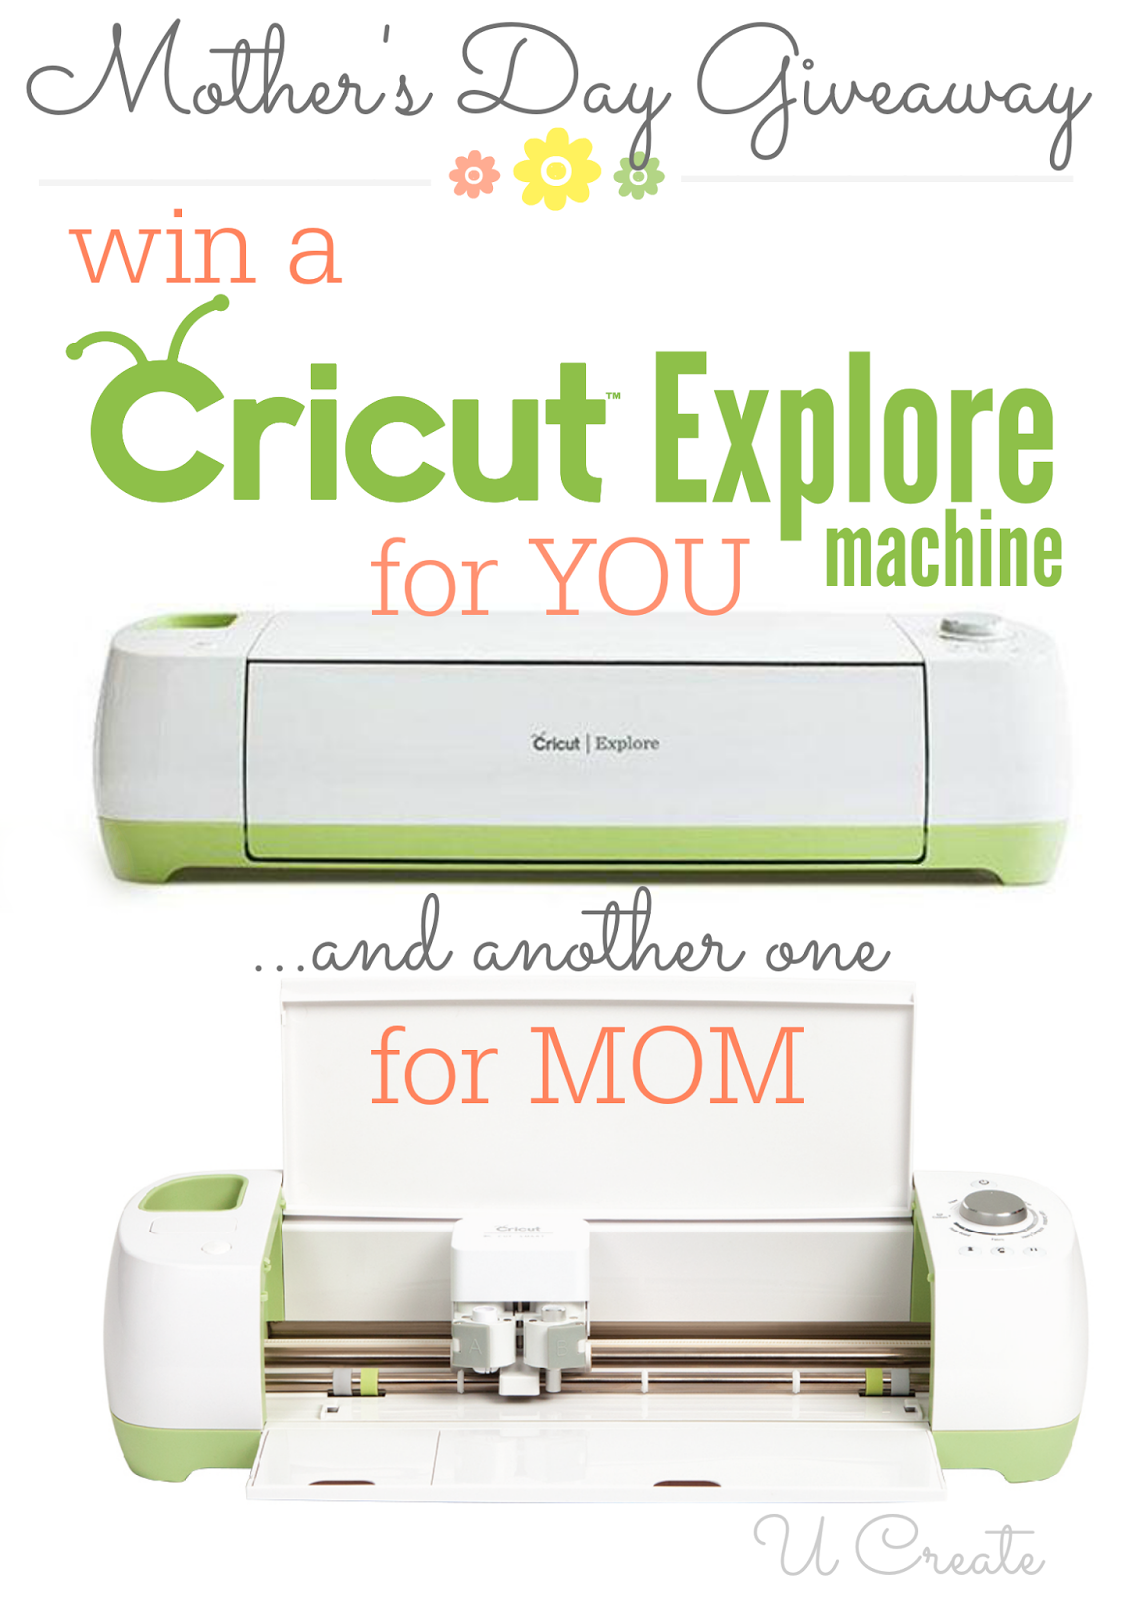 Cricut Explore Machine Giveaway - One for YOU and One for MOM! u-createcrafts.com